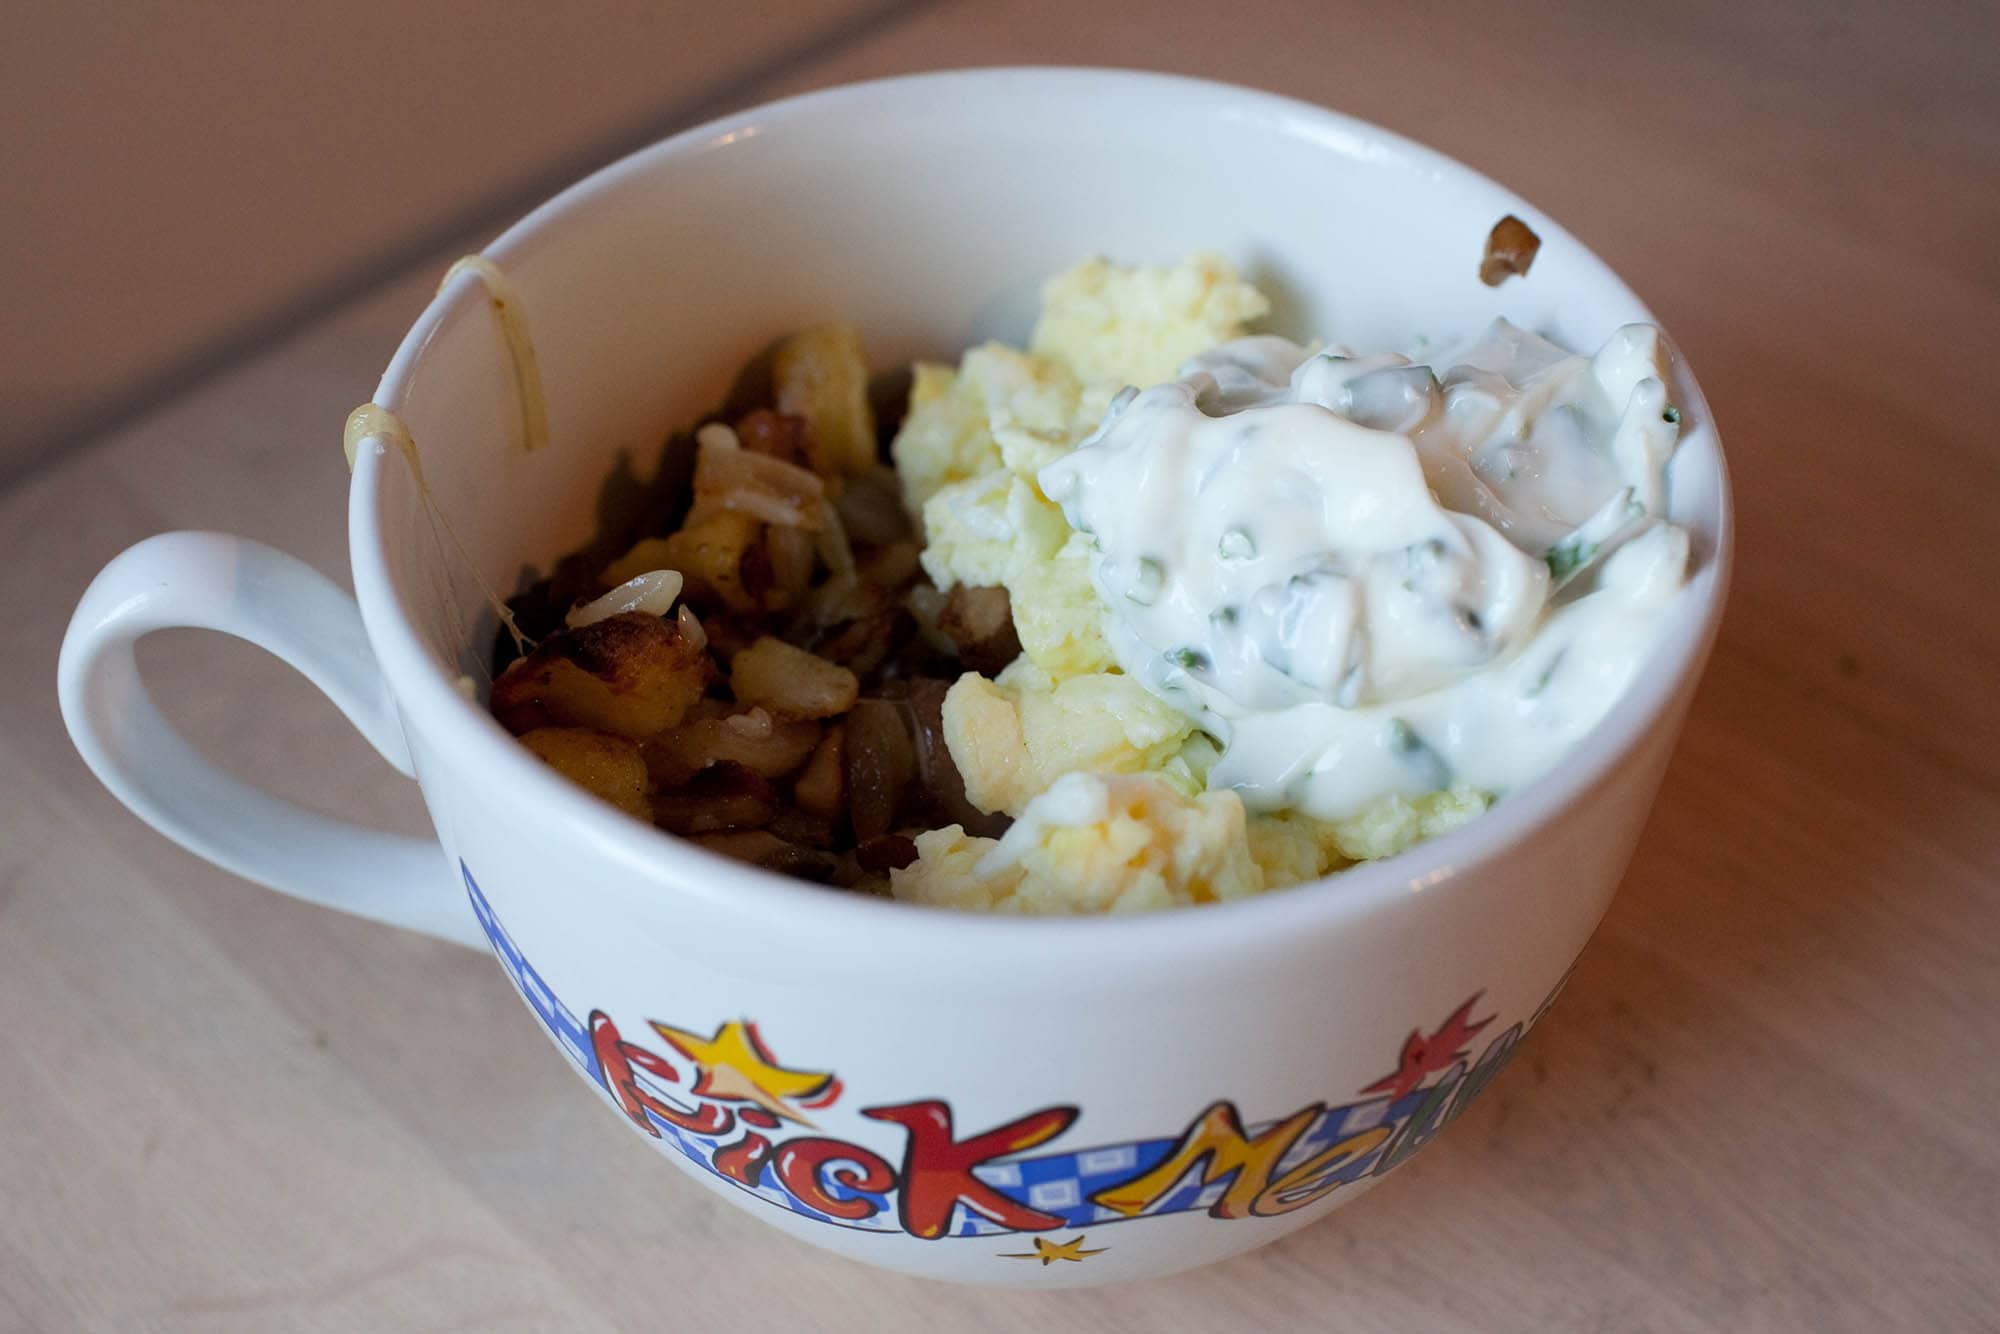 Home fries with mushrooms, onions, and cheese topped with scrambled eggs and chive sour cream.